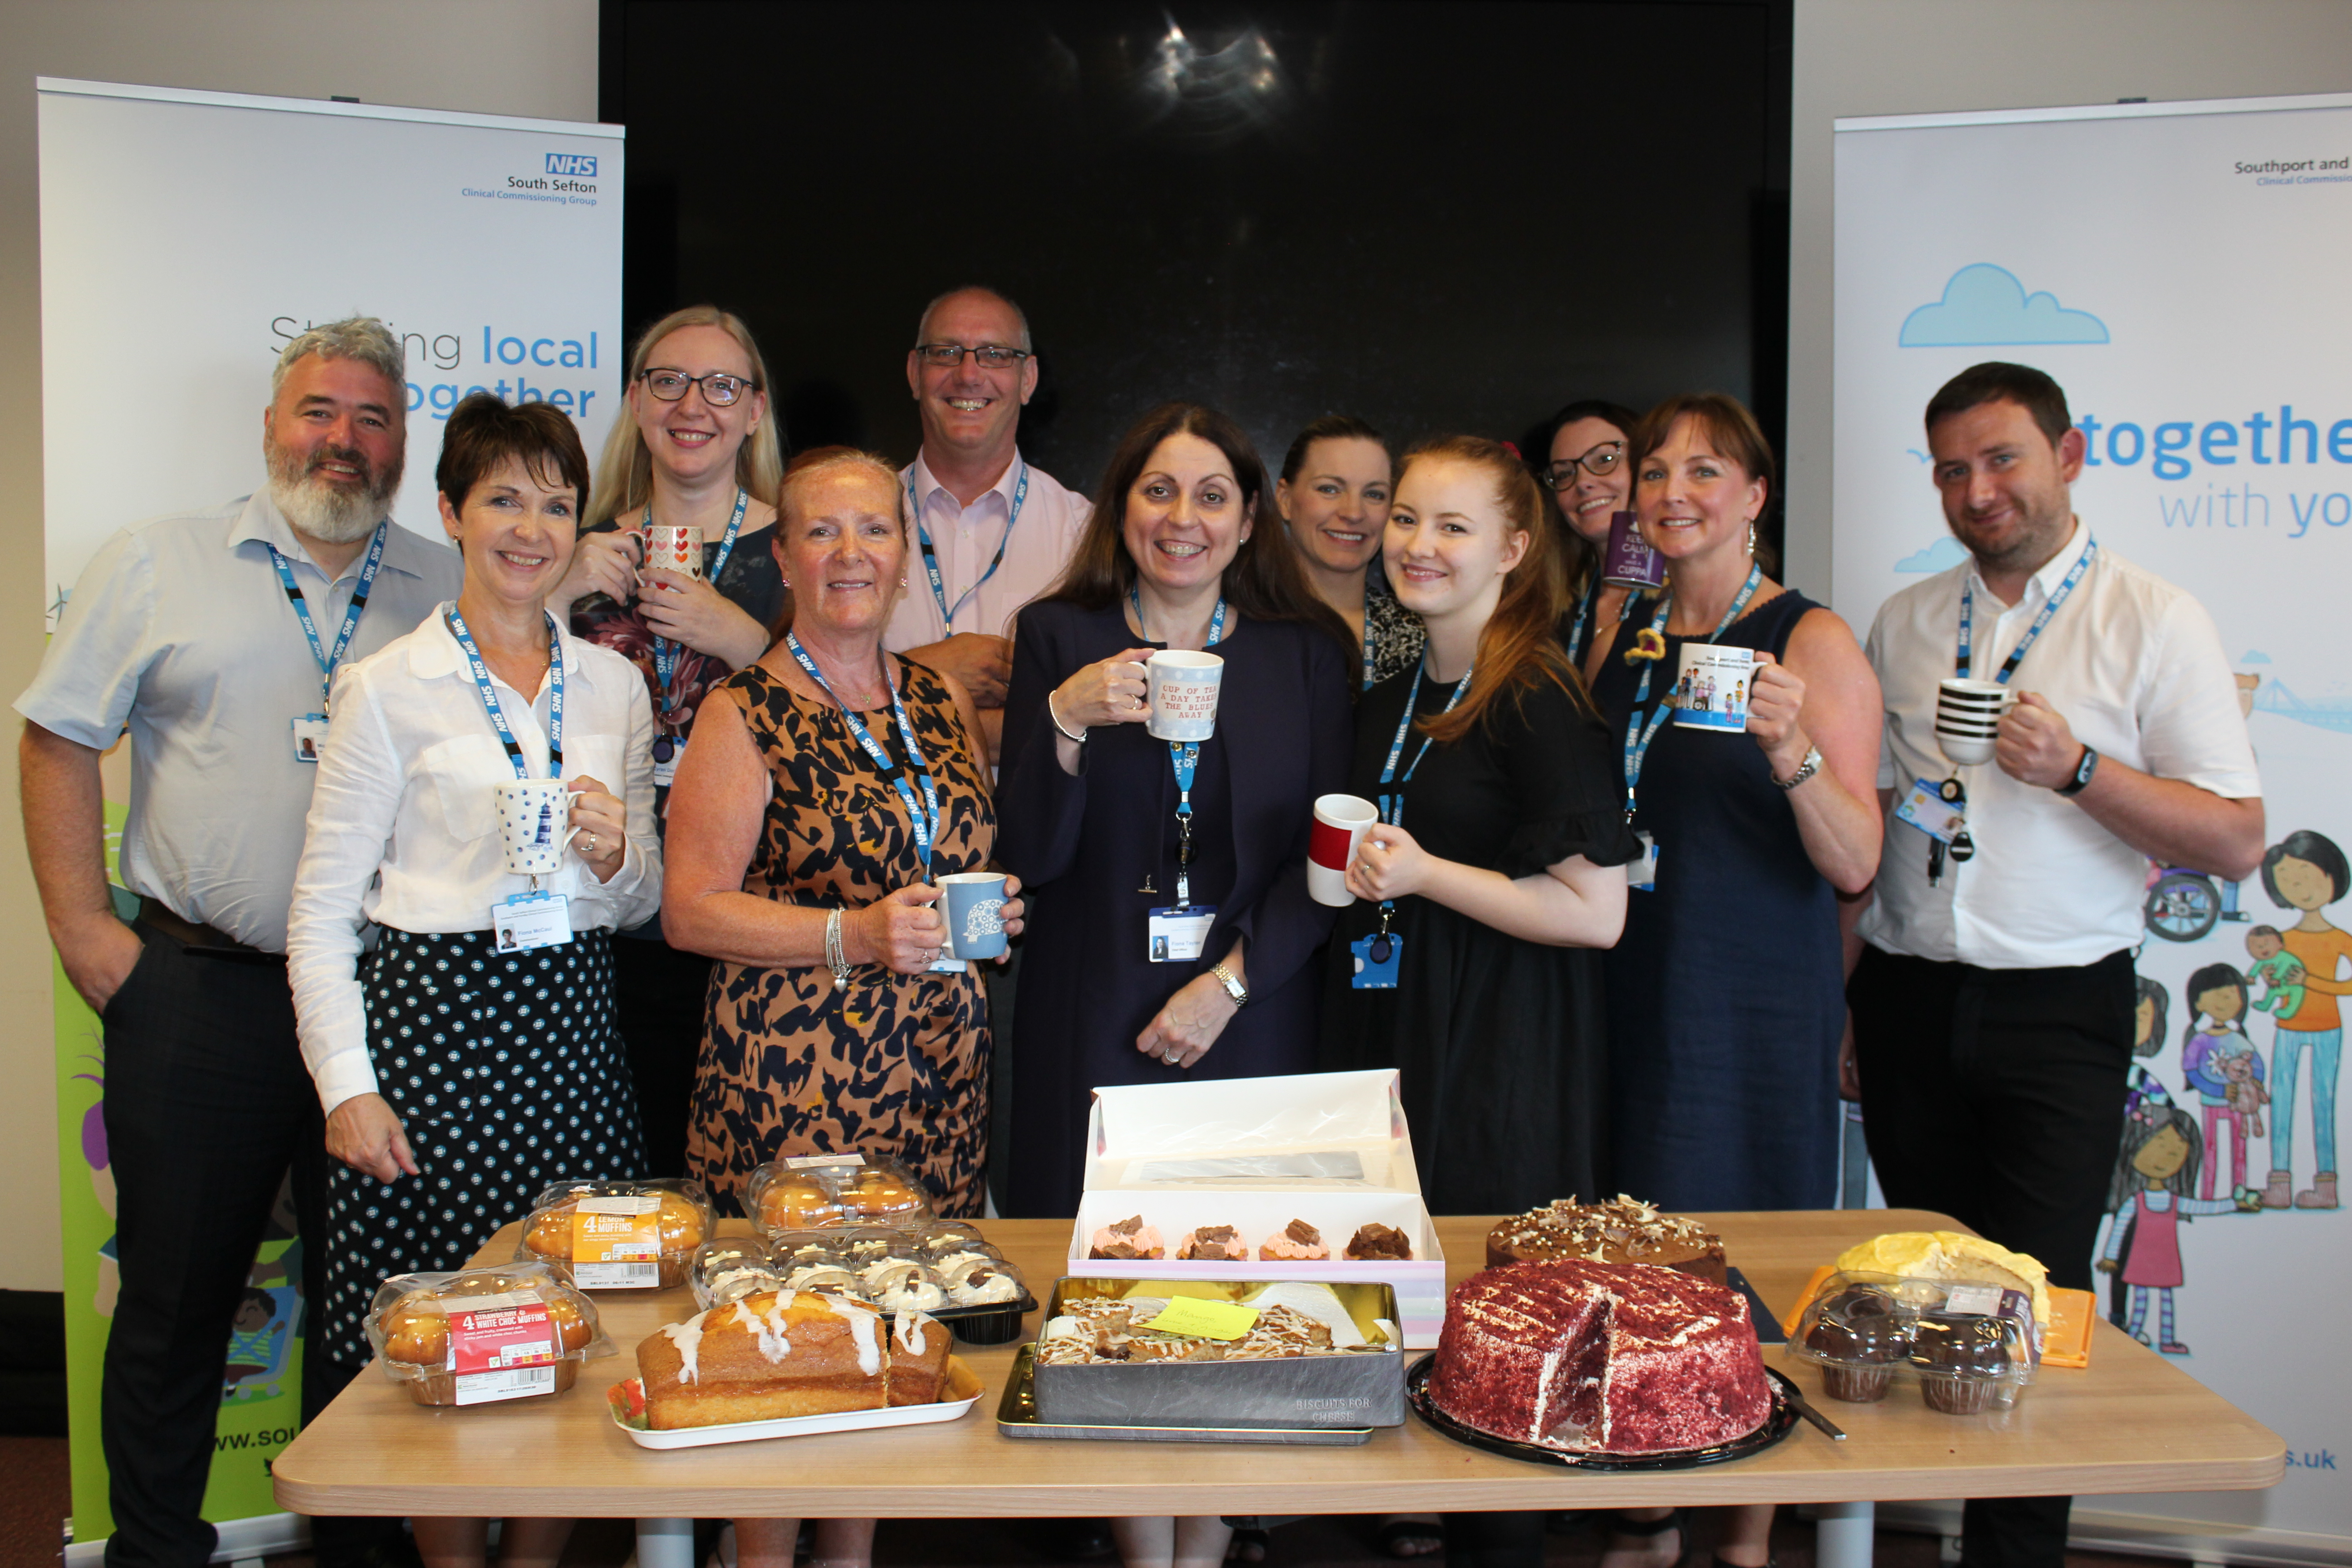 Celebrate the NHS with tea and cake